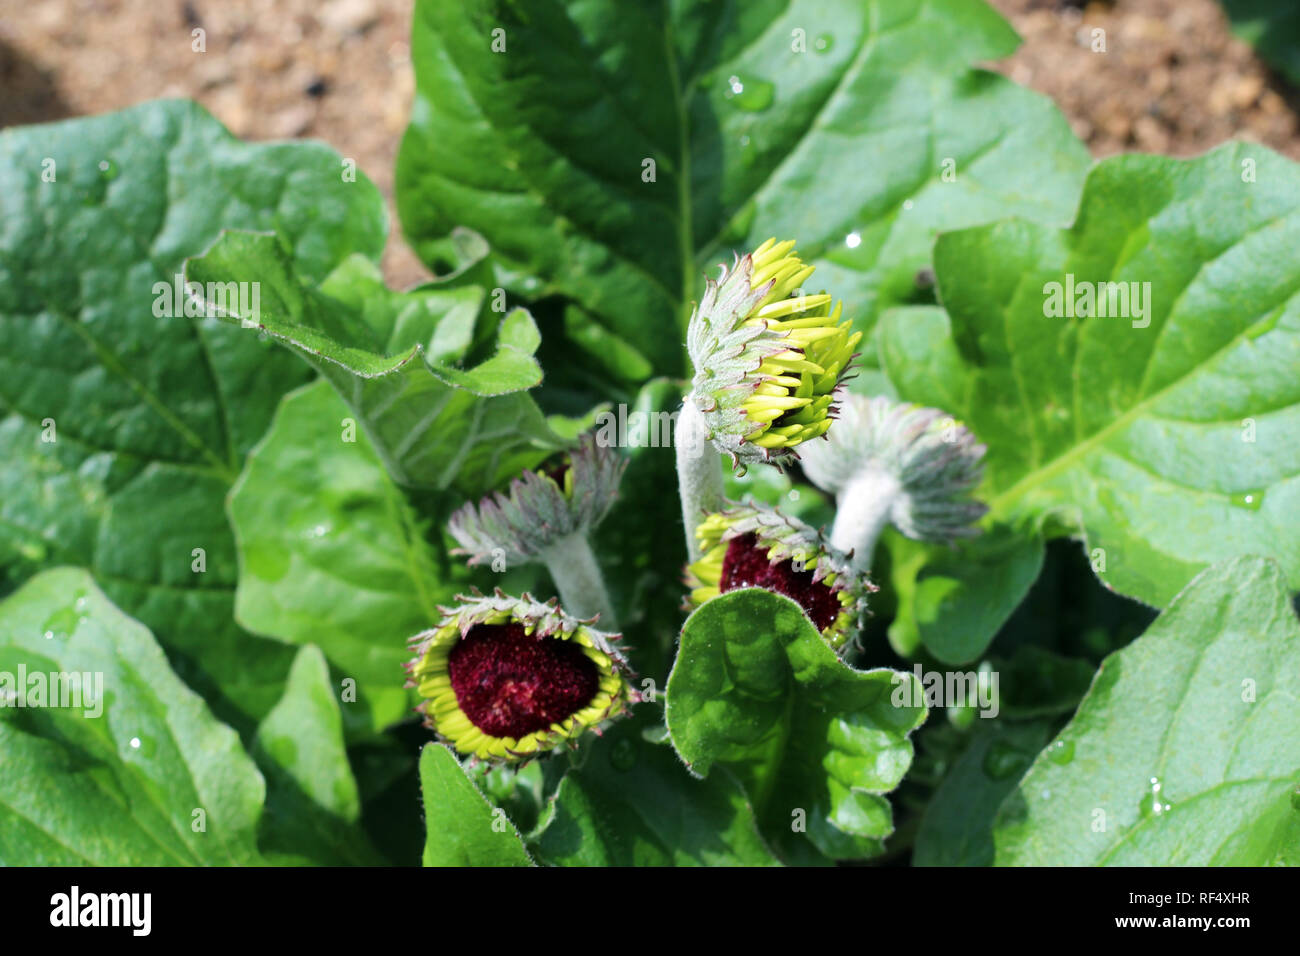 Closeup of a Gerbera Daisy, Transvaal Daisy, just beginning to bloom in a rocky garden in the spring - Stock Image